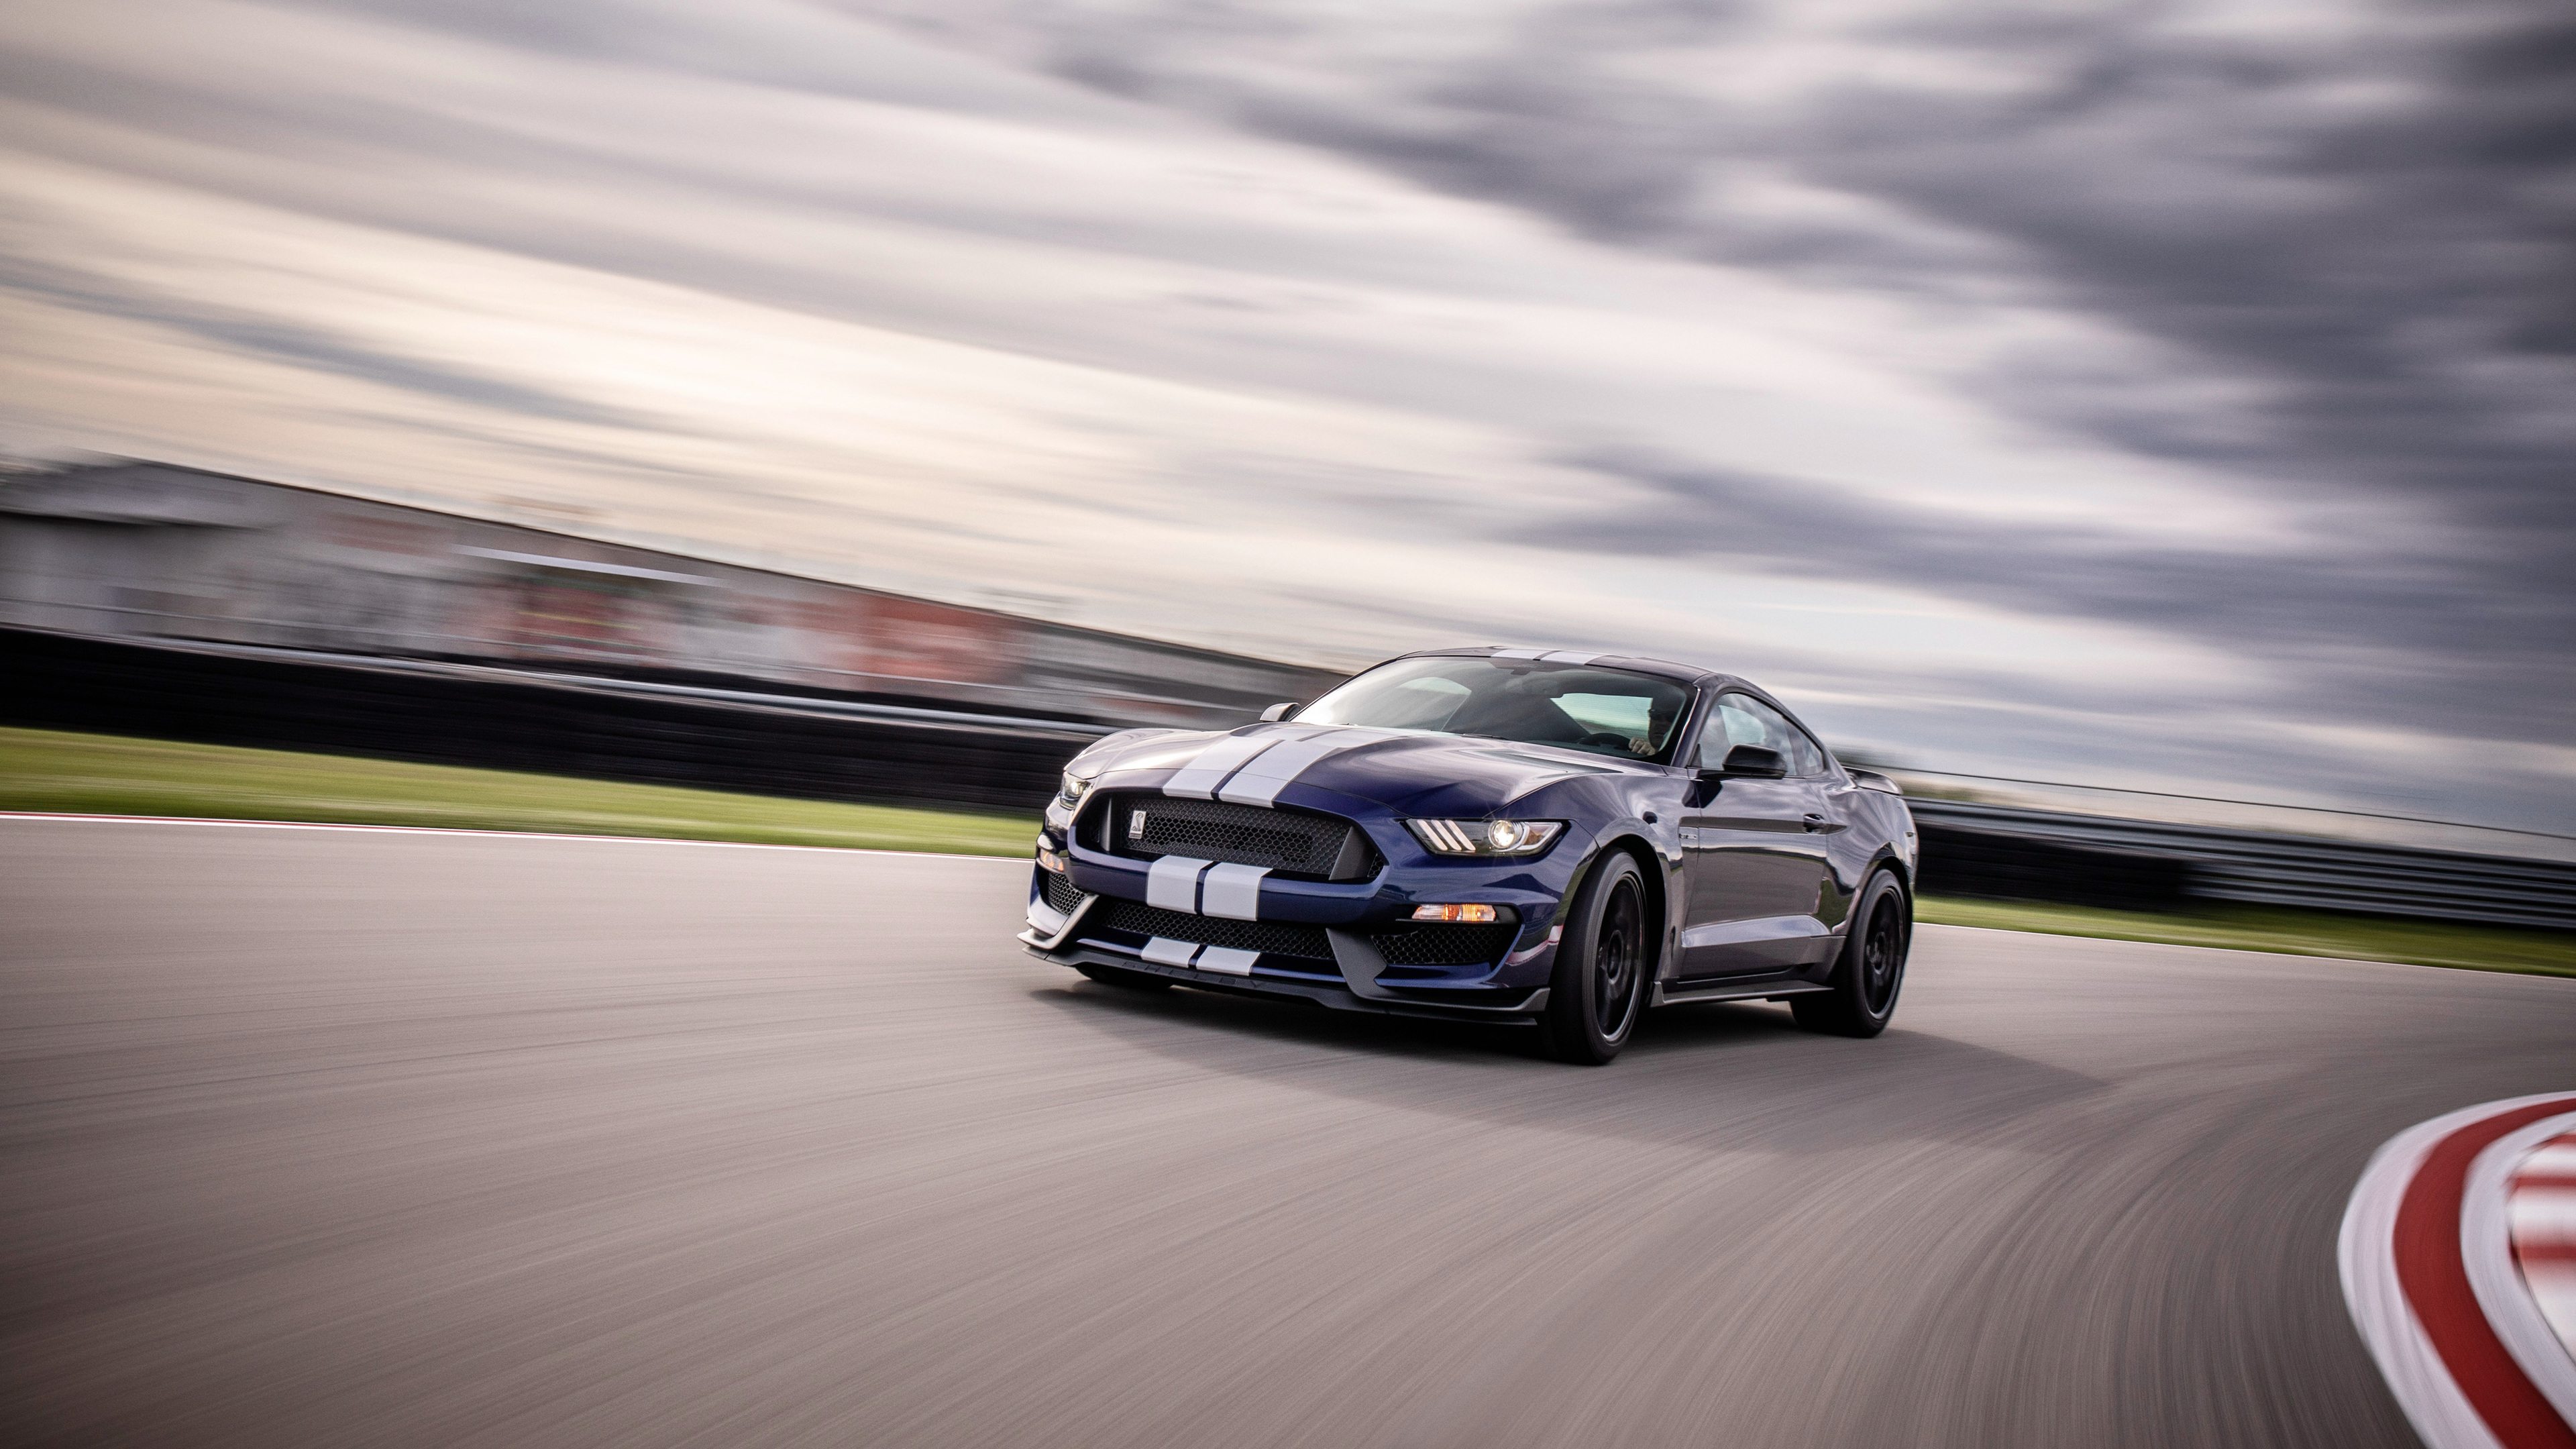 2019 ford mustang shelby gt350 1539111745 - 2019 Ford Mustang Shelby GT350 - shelby wallpapers, hd-wallpapers, ford wallpapers, ford mustang wallpapers, cars wallpapers, 4k-wallpapers, 2019 cars wallpapers